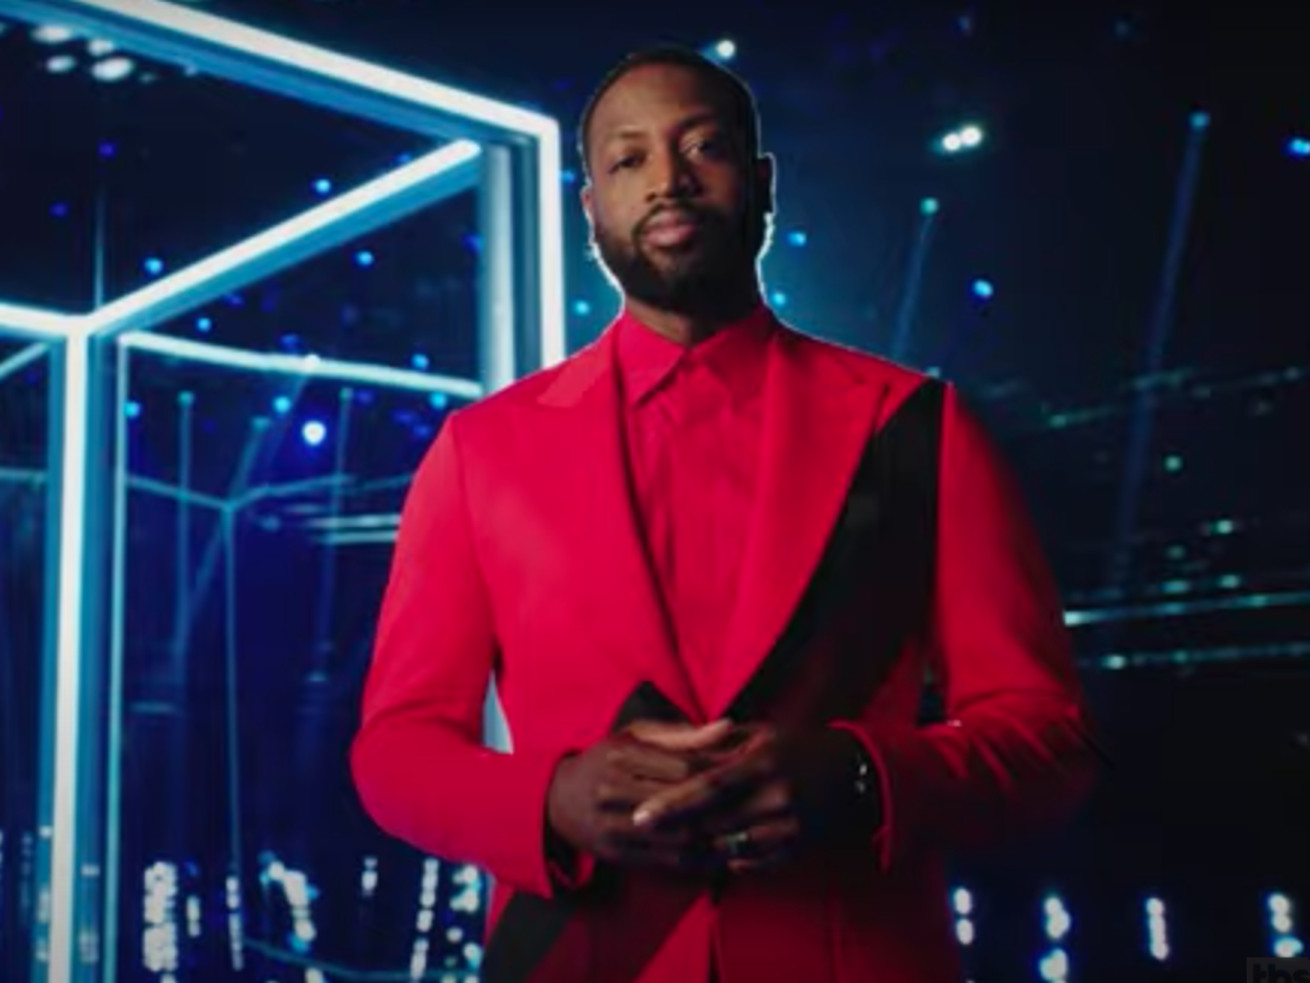 """Former NBA star Dwyane Wade hosts game show """"The Cube"""" on TBS."""